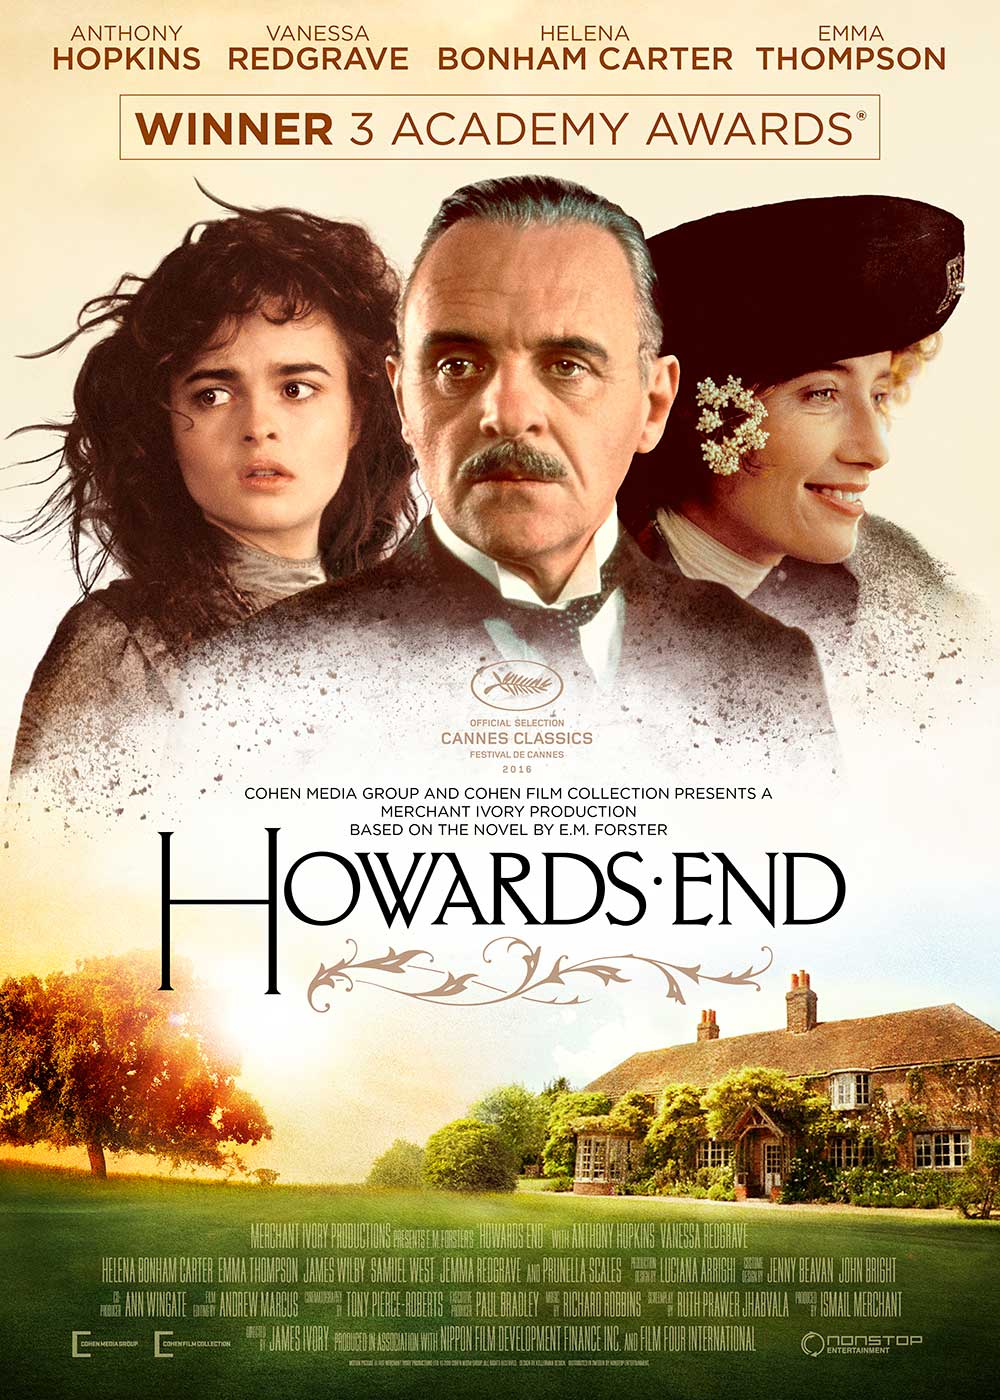 HowardsEnd_poster.jpg